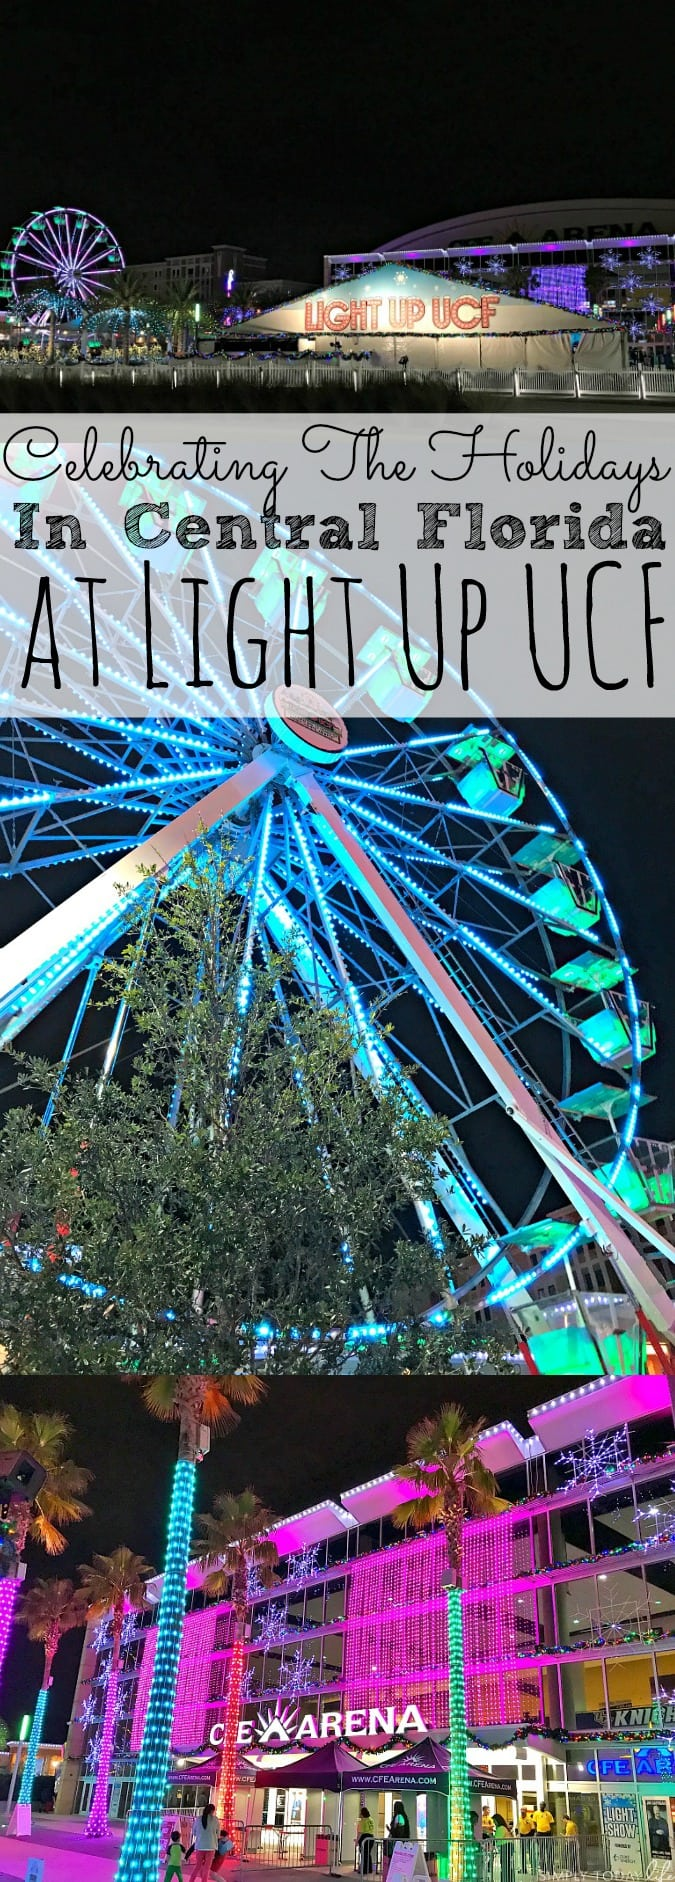 Celebrating The Holidays In Central Florida At Light Up UCF - simplytodaylife.com